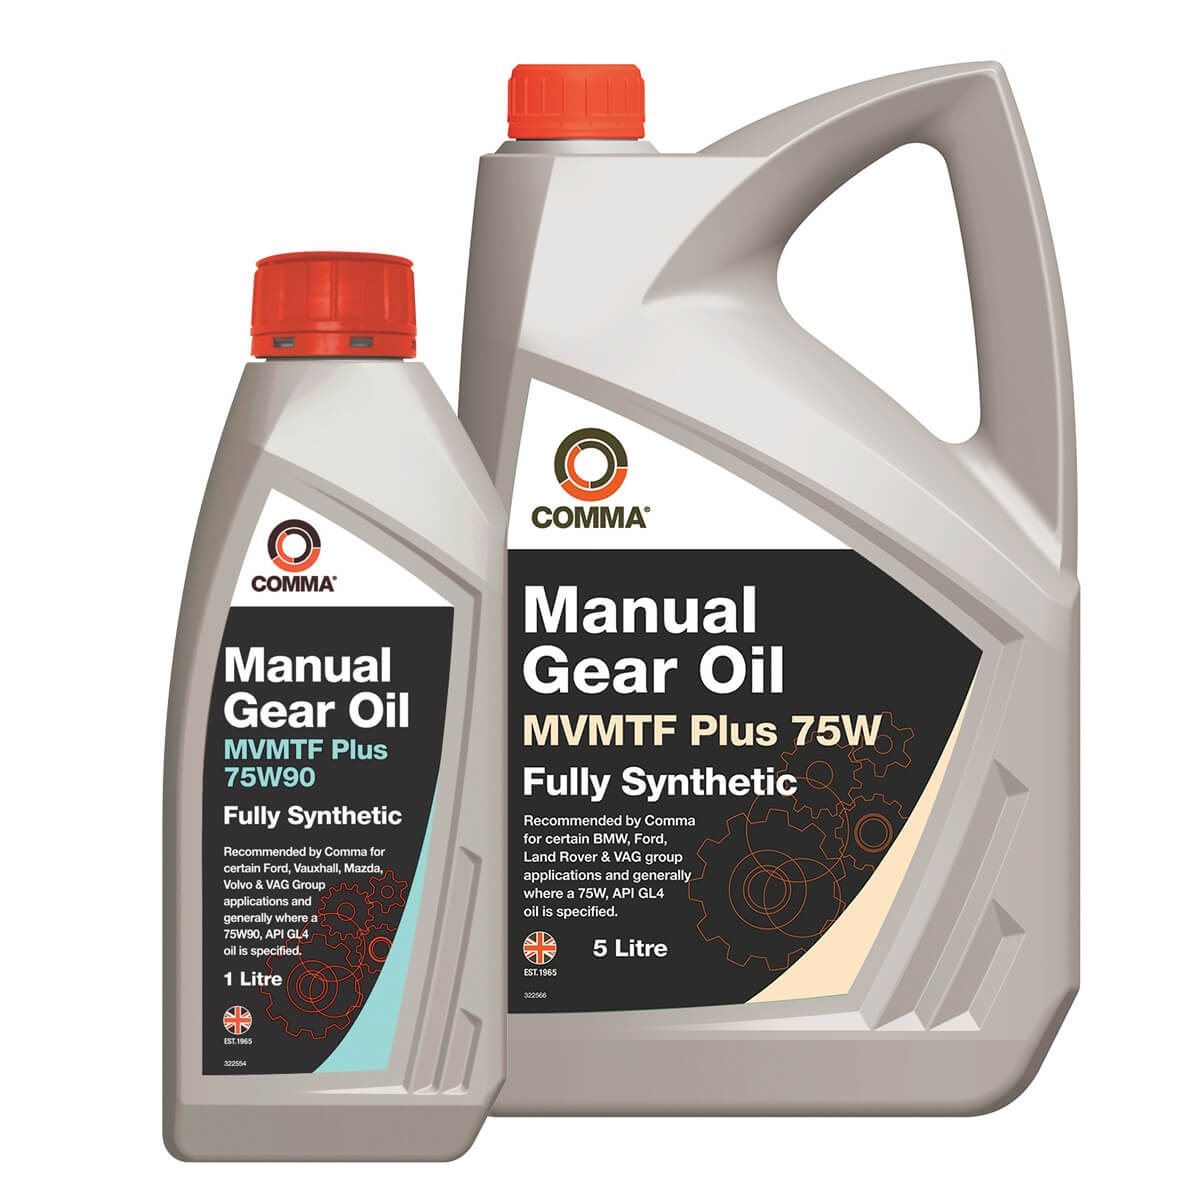 CHRYSLER VOYAGER IV Manual Transmission Oil